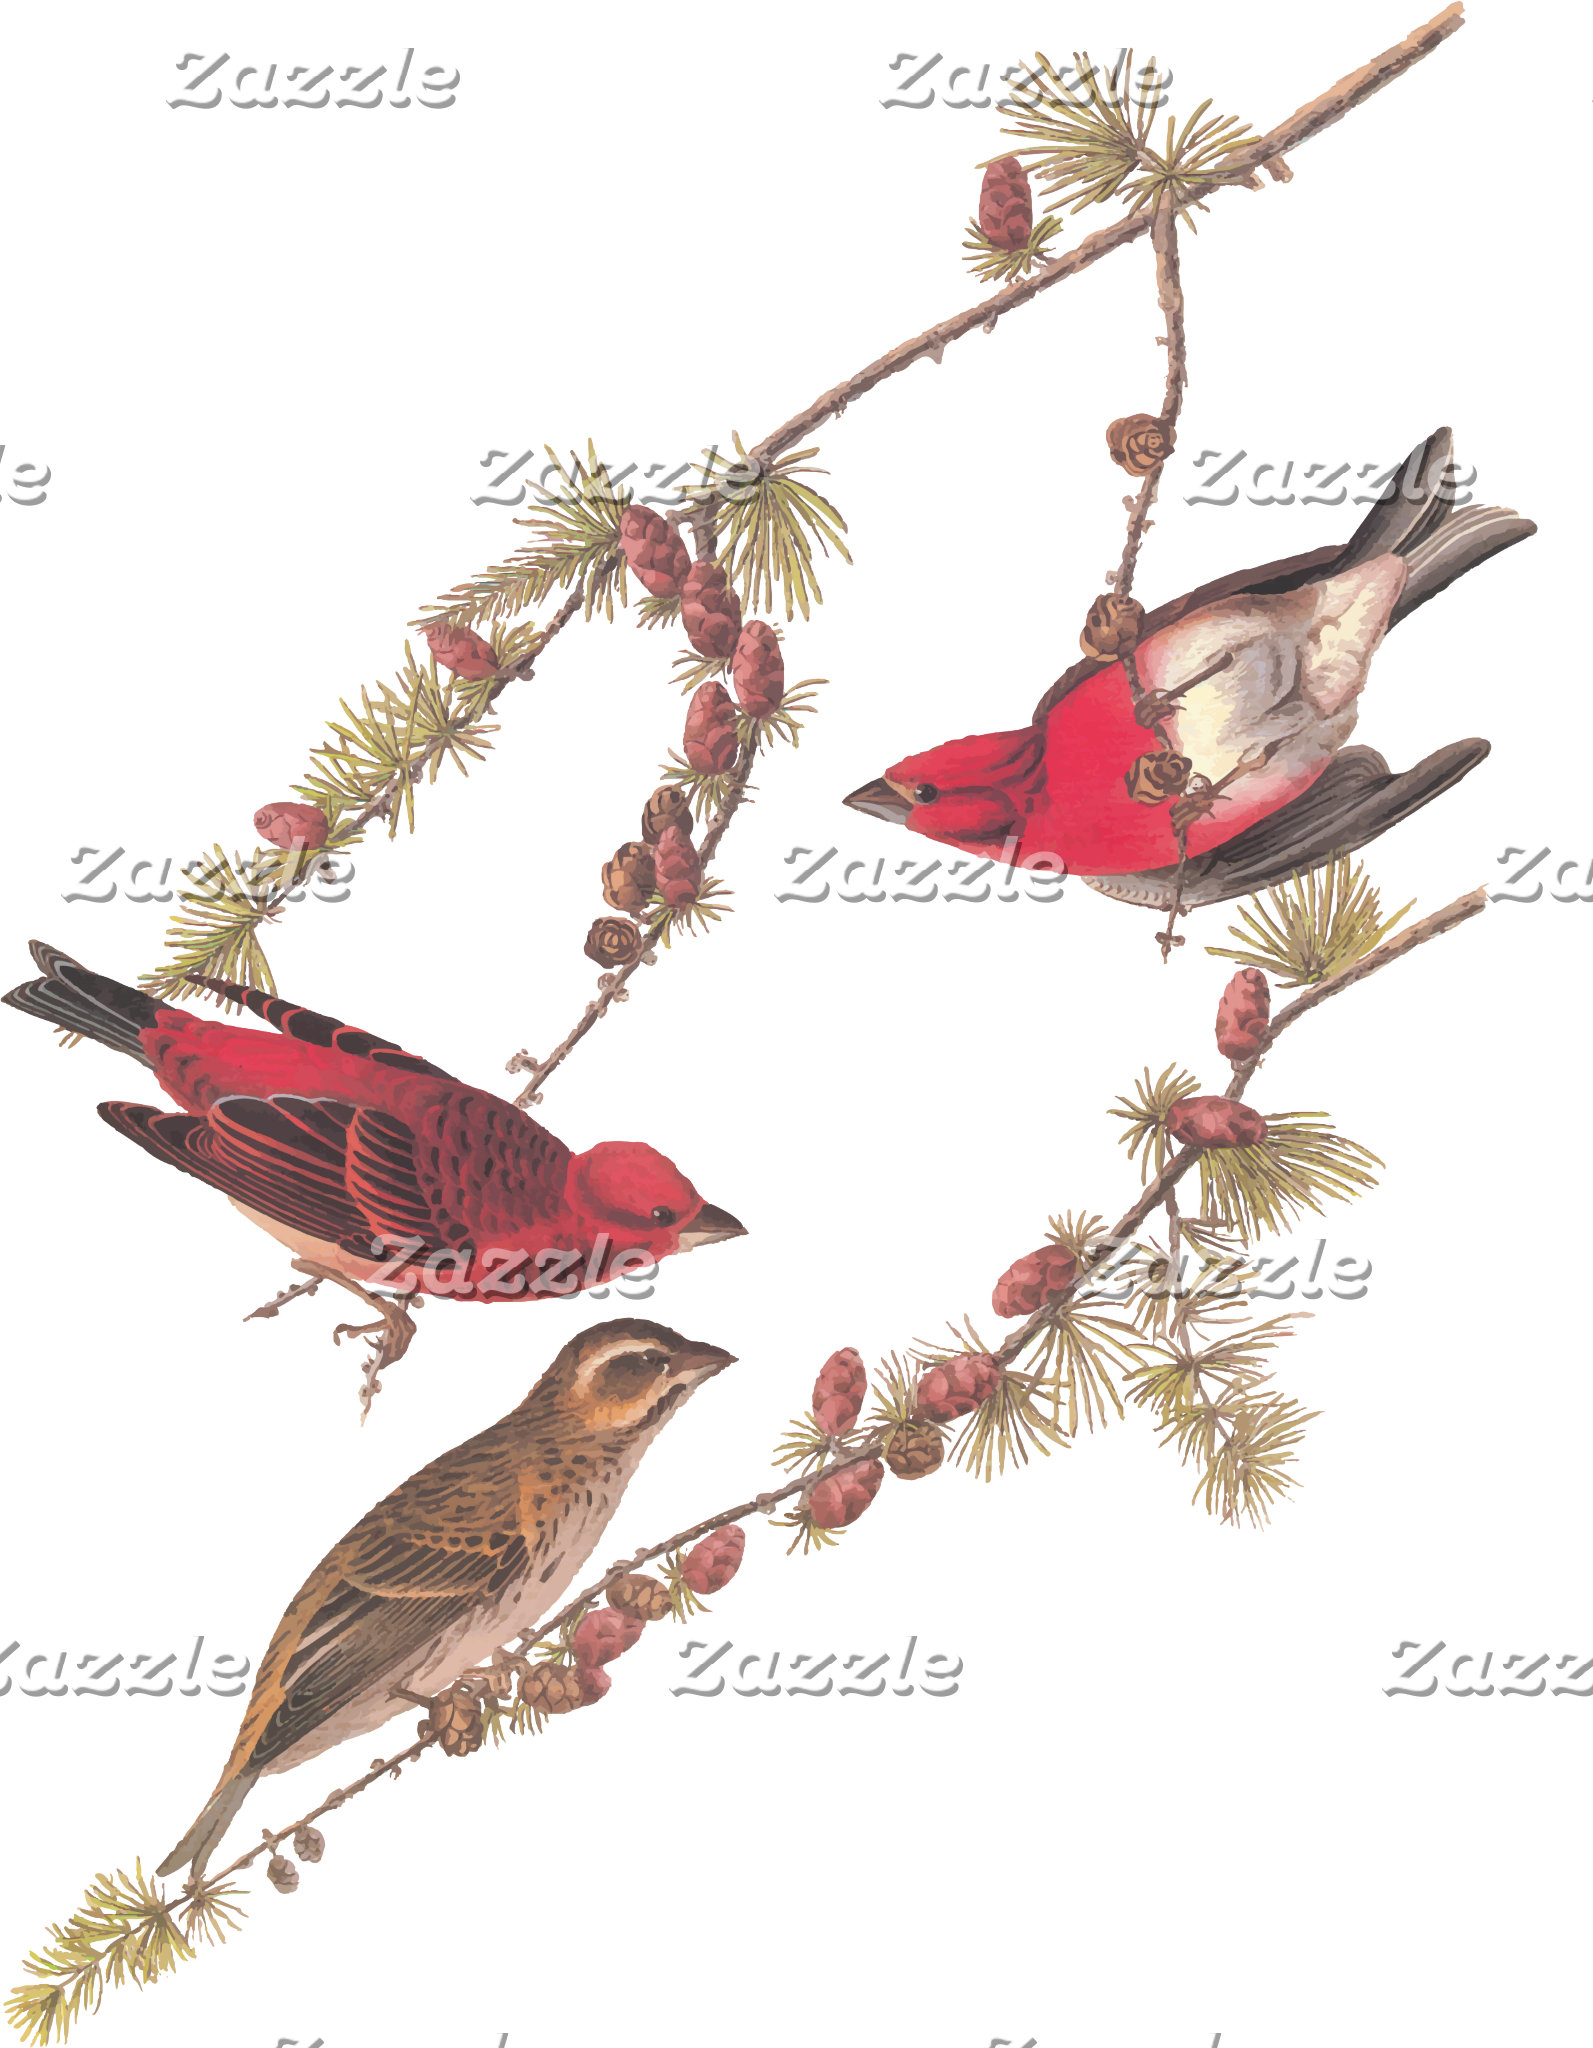 Purple Finch (Plate 4)